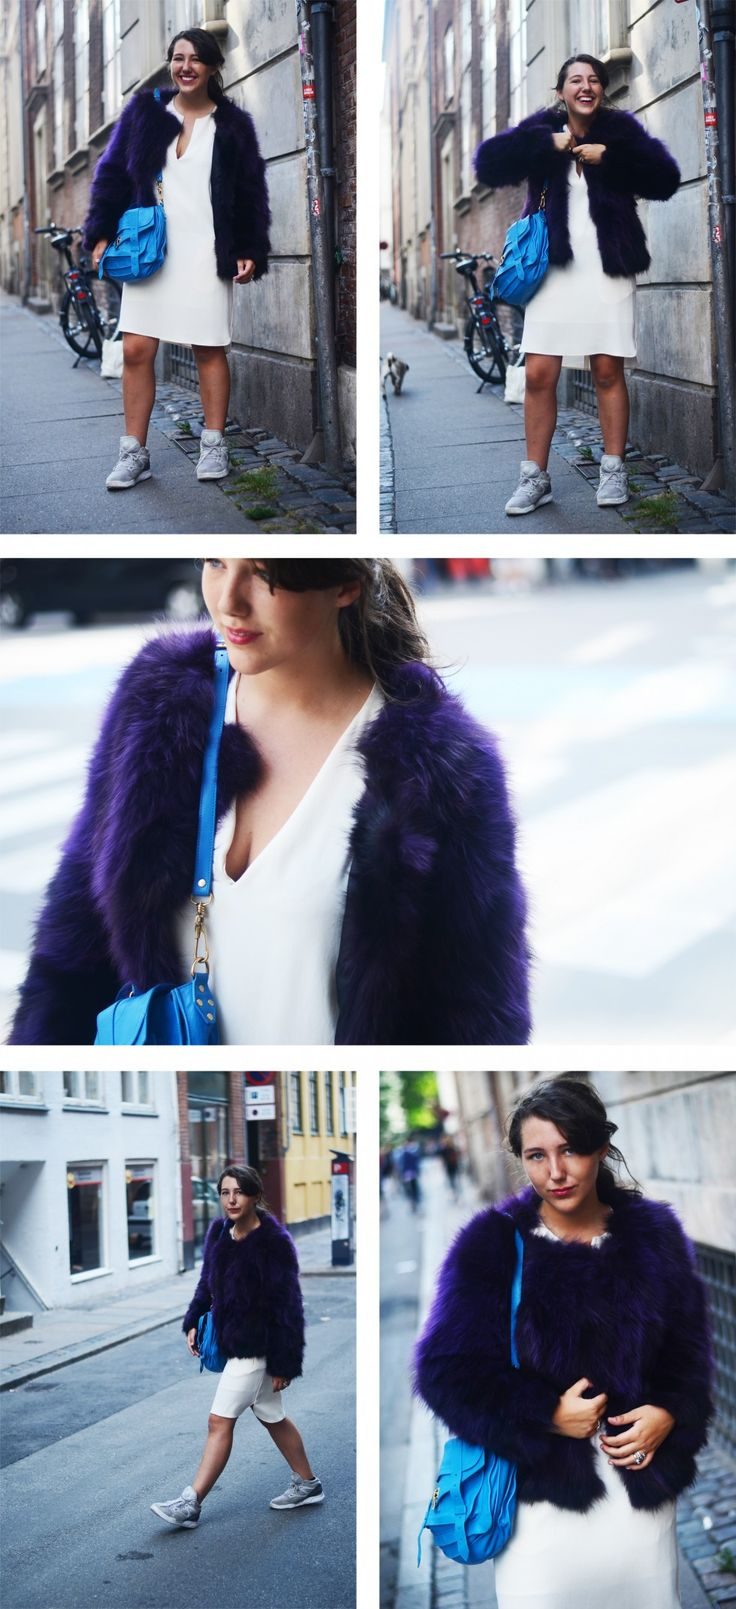 Fur: Saks Potts / Dress: Filippa K / Shoes: Reebok Pumps / Silver Jewellery: Clan of DK / Bag: Proenza Schouler